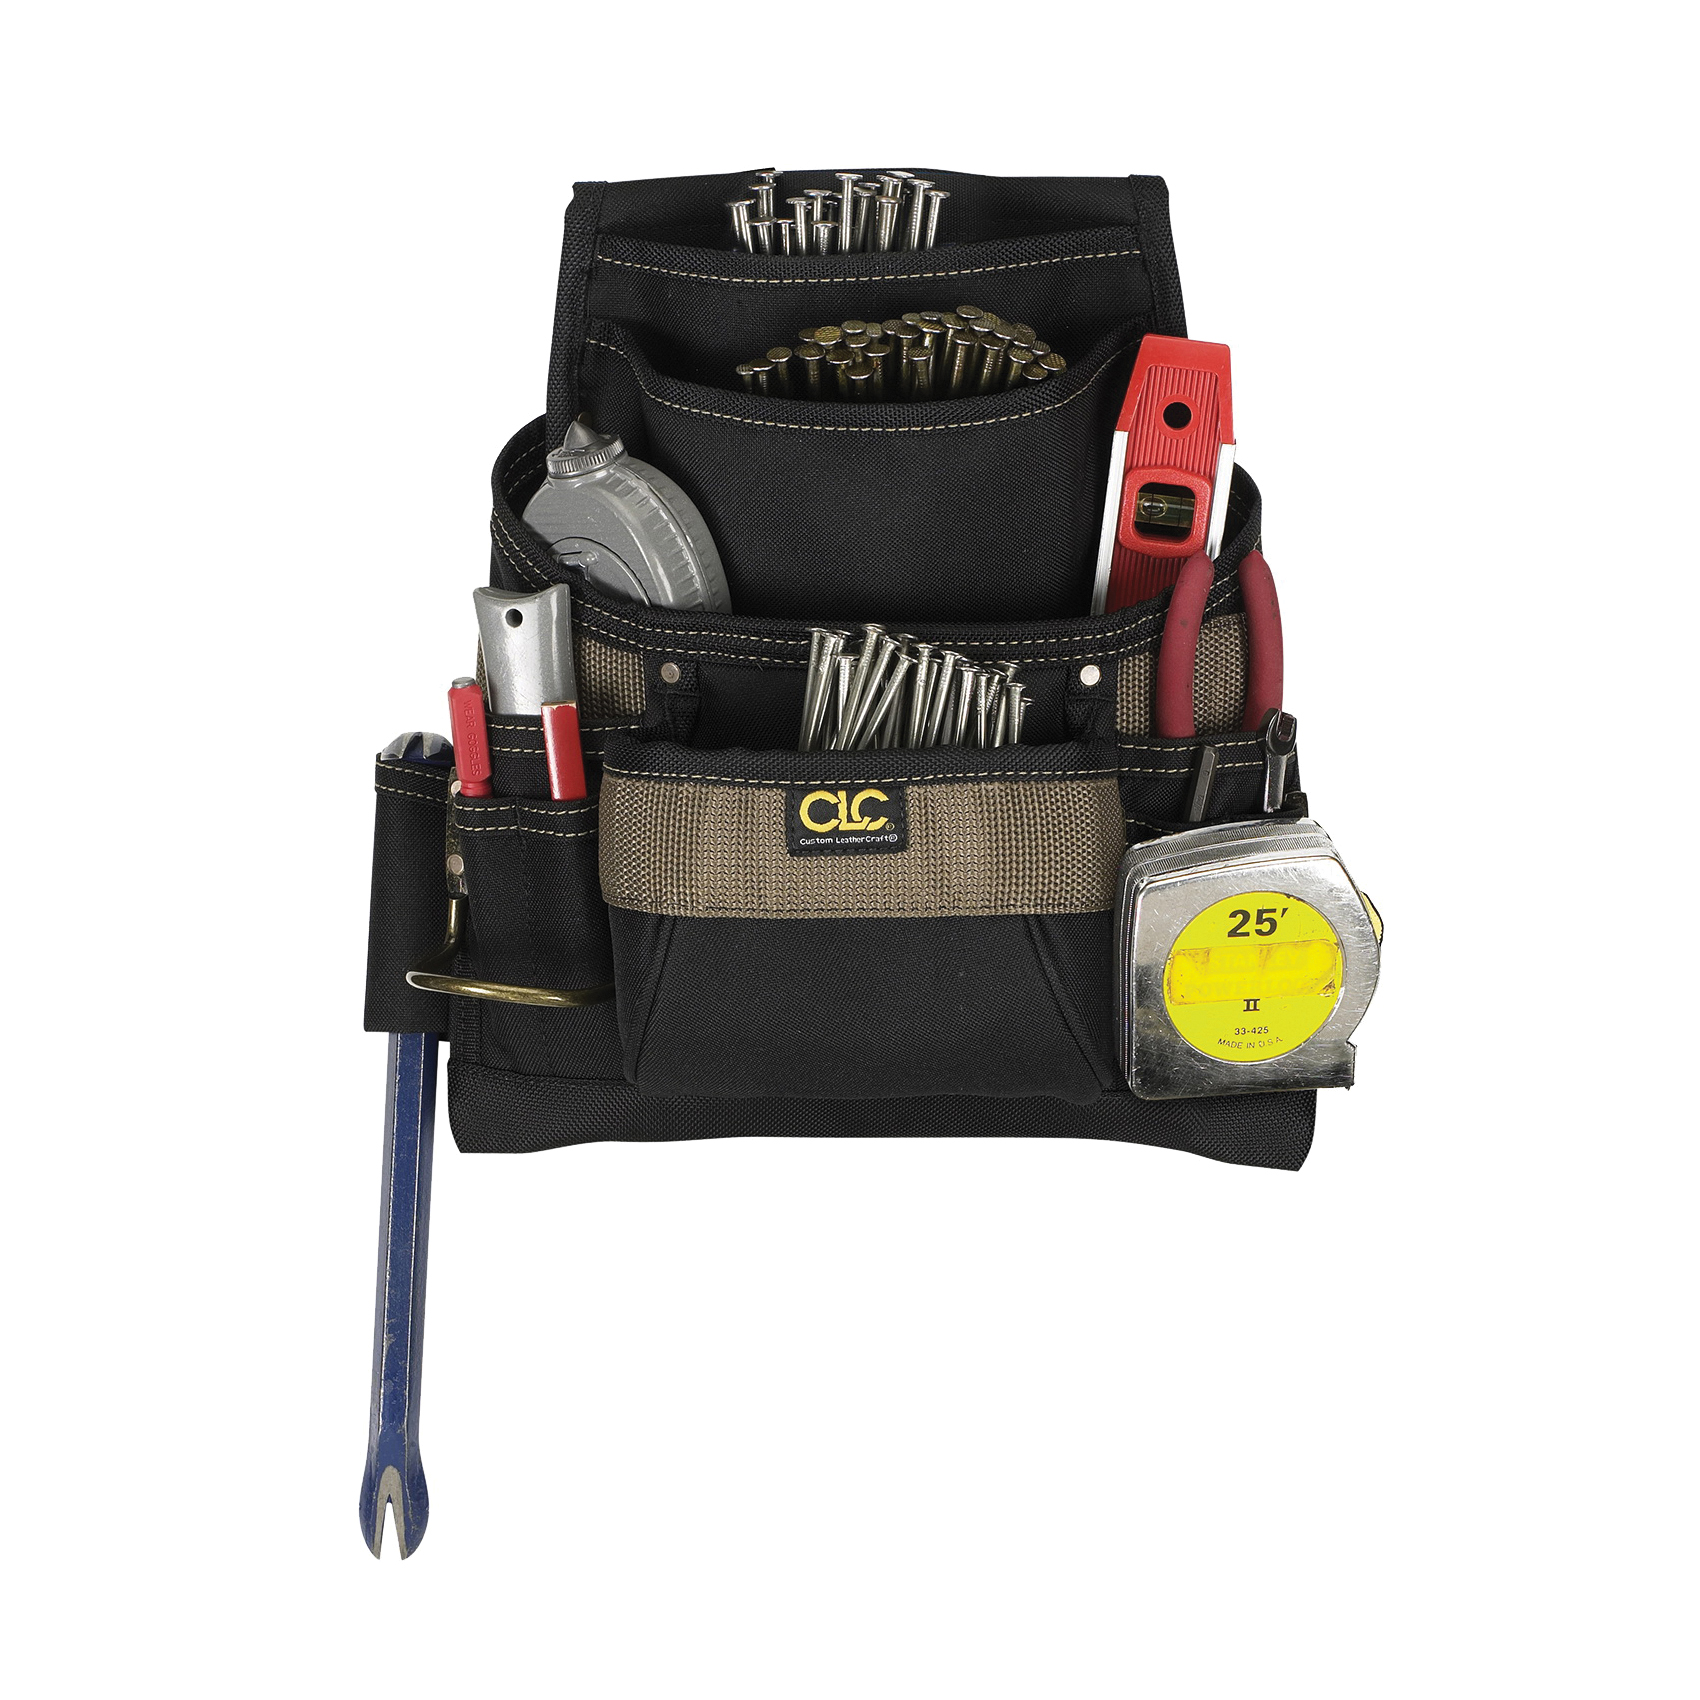 Picture of CLC Tool Works 1620 Nail/Tool Bag, 12-3/4 in W, 3-1/4 in D, 13-3/4 in H, 11 -Pocket, Polyester, Black/Brown